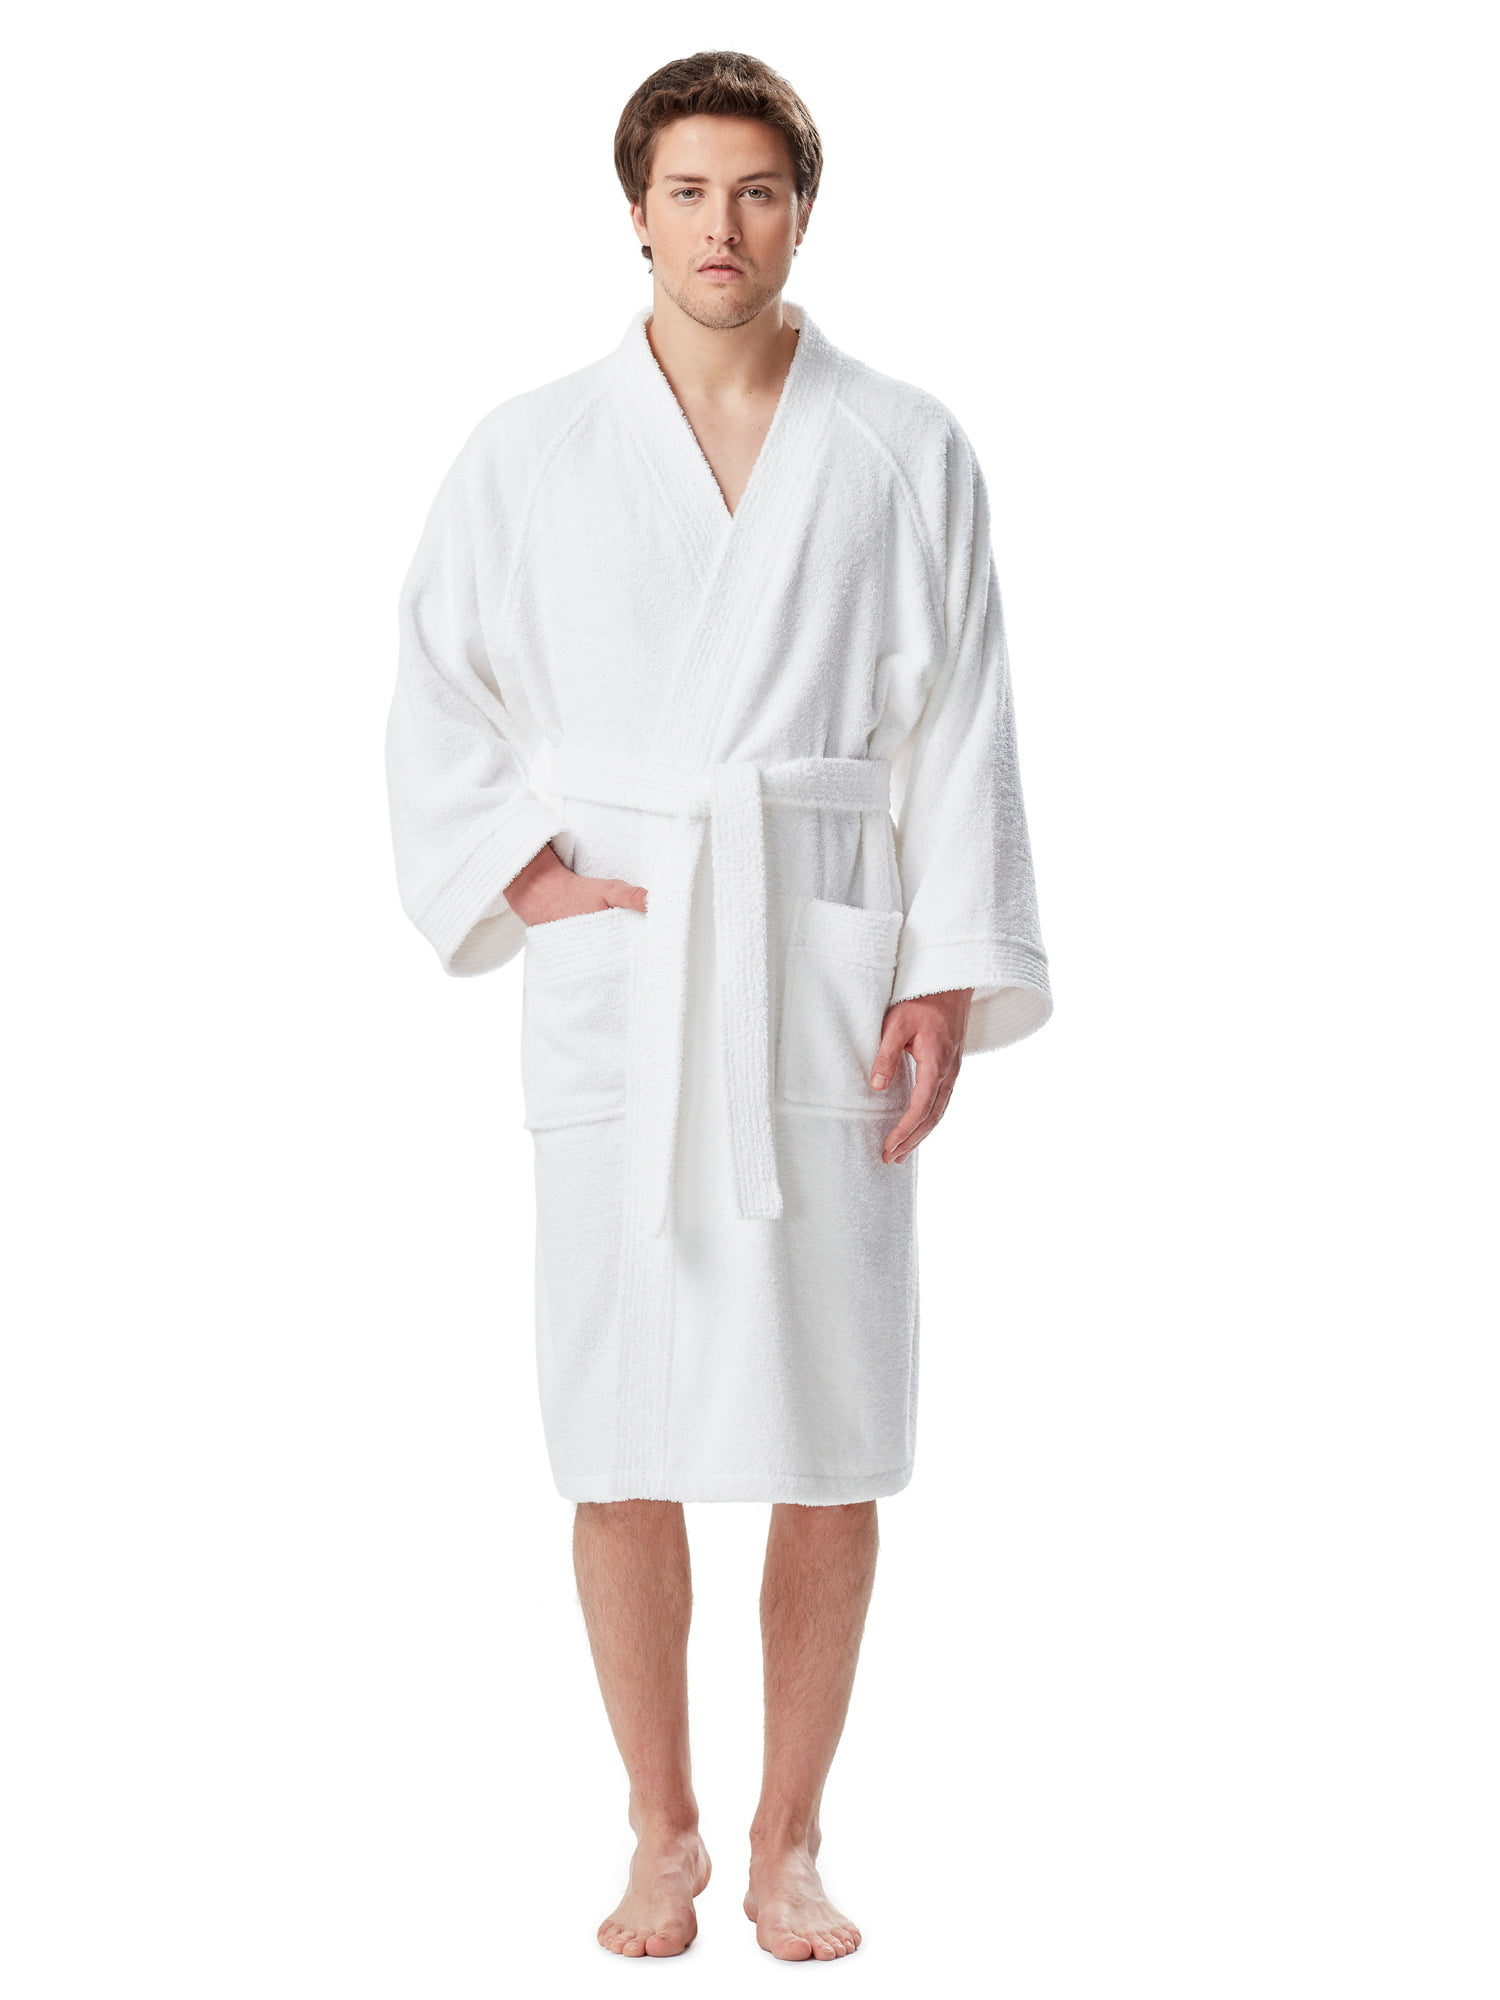 Arus - Men s Thick Full Ankle Length Hooded Turkish Cotton Bathrobe -  Walmart.com 0c519ef39